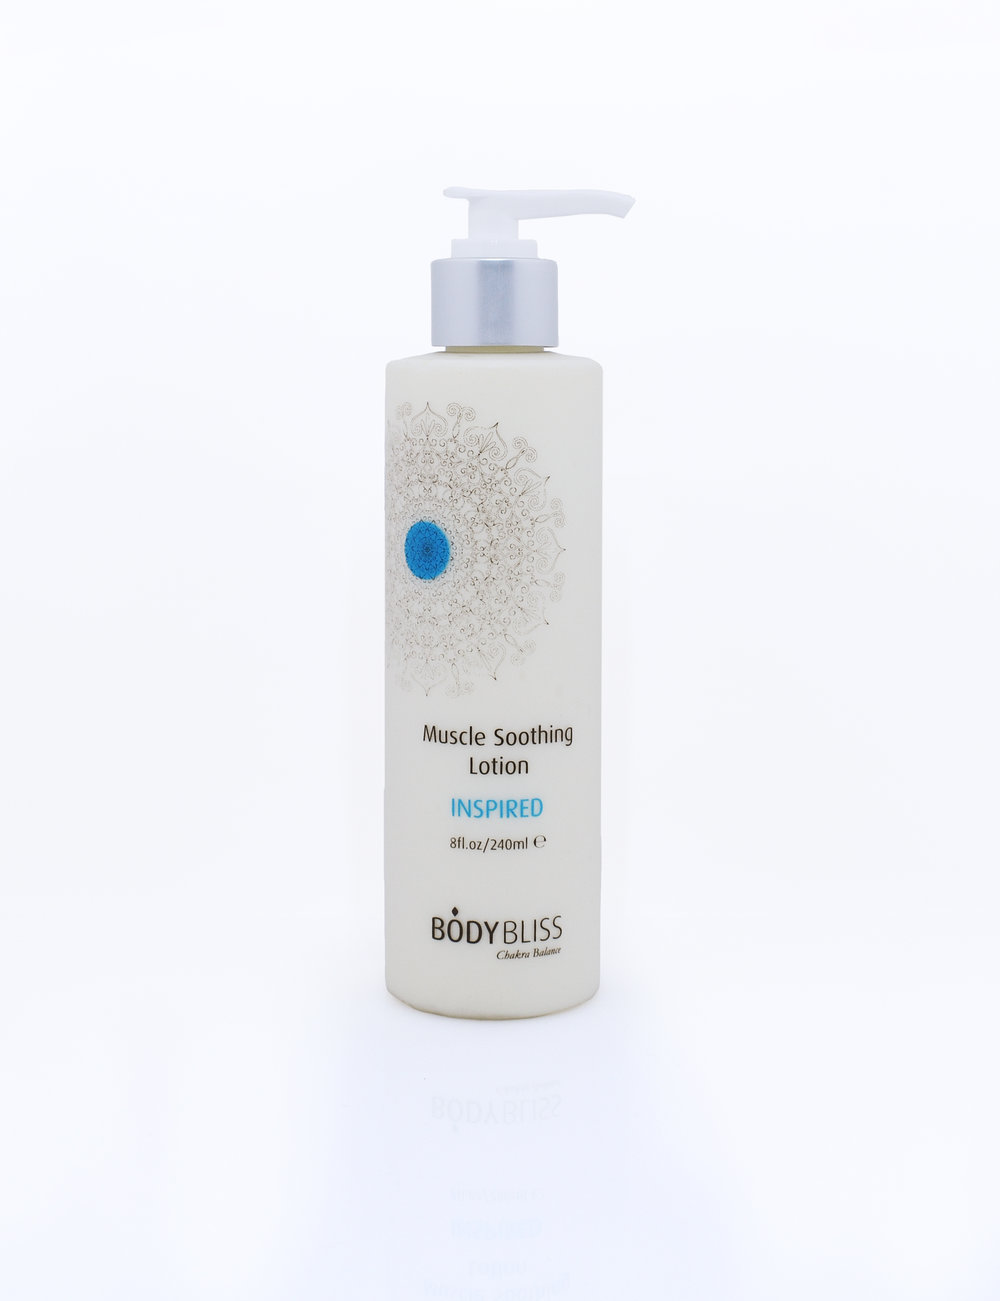 INSPIRED Organic Mint & Arnica Muscle Soothing Lotion  INSPIRED corresponds to the color blue and nourishes the 5th Chakra. With Arnica, Menthol and Clove in a deeply nourishing, moisturizing base, INSPIRED Lotion has a 'cold heat' effect that is refreshing and stimulating to the mind. USE THE CODE  HEATHER  AND RECEIVE A 20% DISCOUNT!